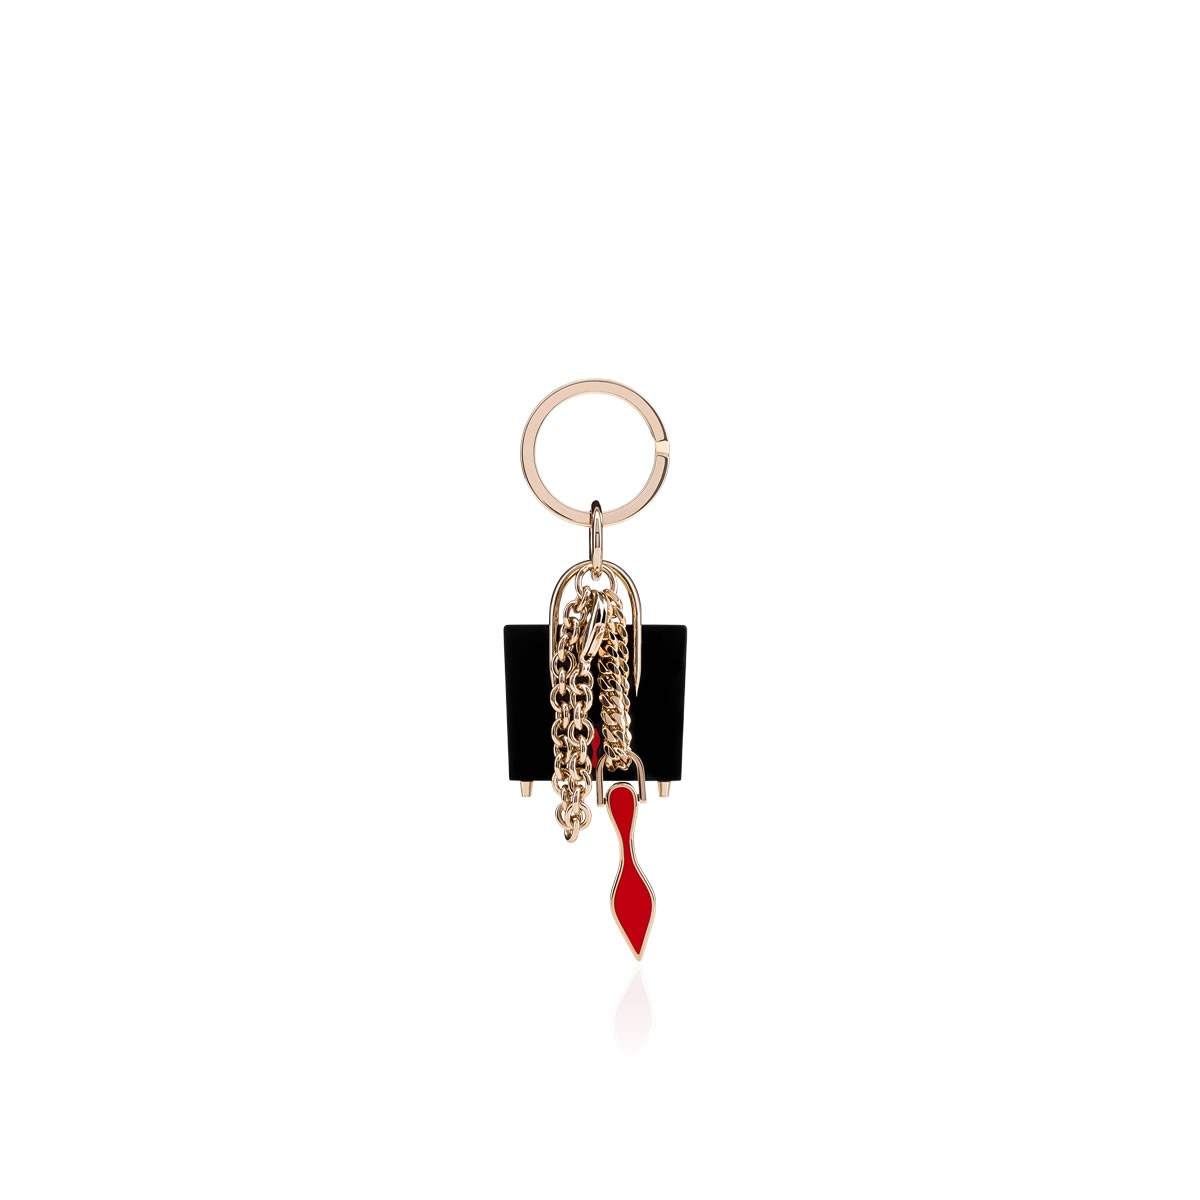 Accessories - W Paloma Keyring - Christian Louboutin